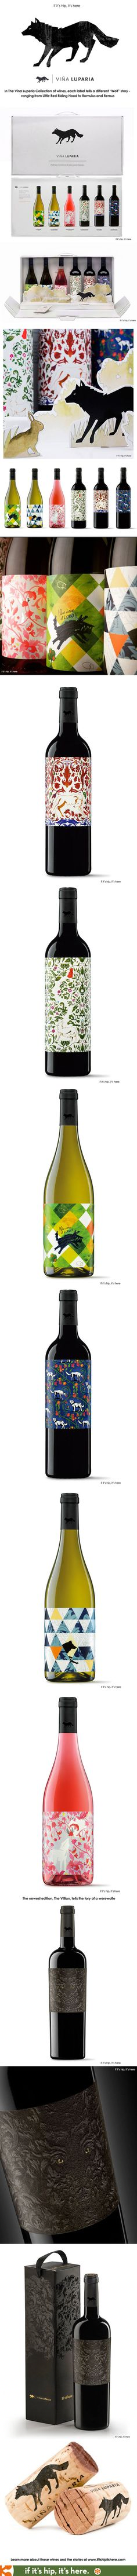 """Viña Luparia wines are beautifully branded and labeled. Each tells a story that revolves around a legend, myth or fairytale about a Wolf. And a look at the newest addition to the """"wolf pack."""""""